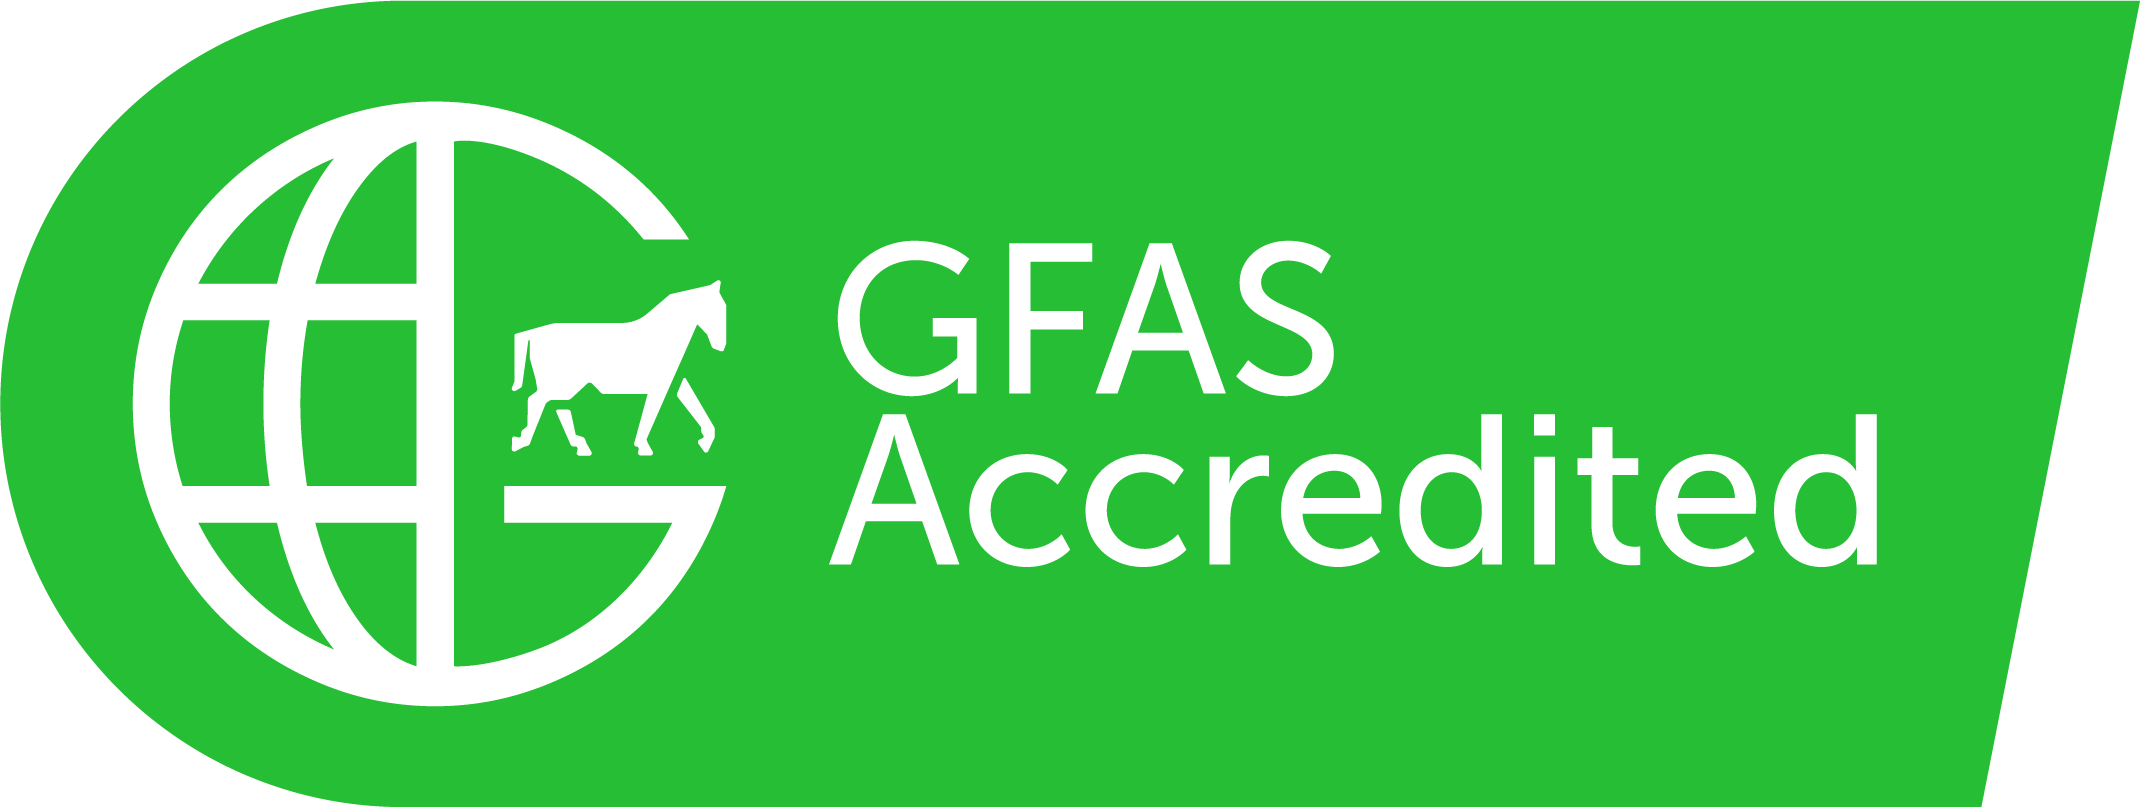 GFAS_badges-Accredited horses.png